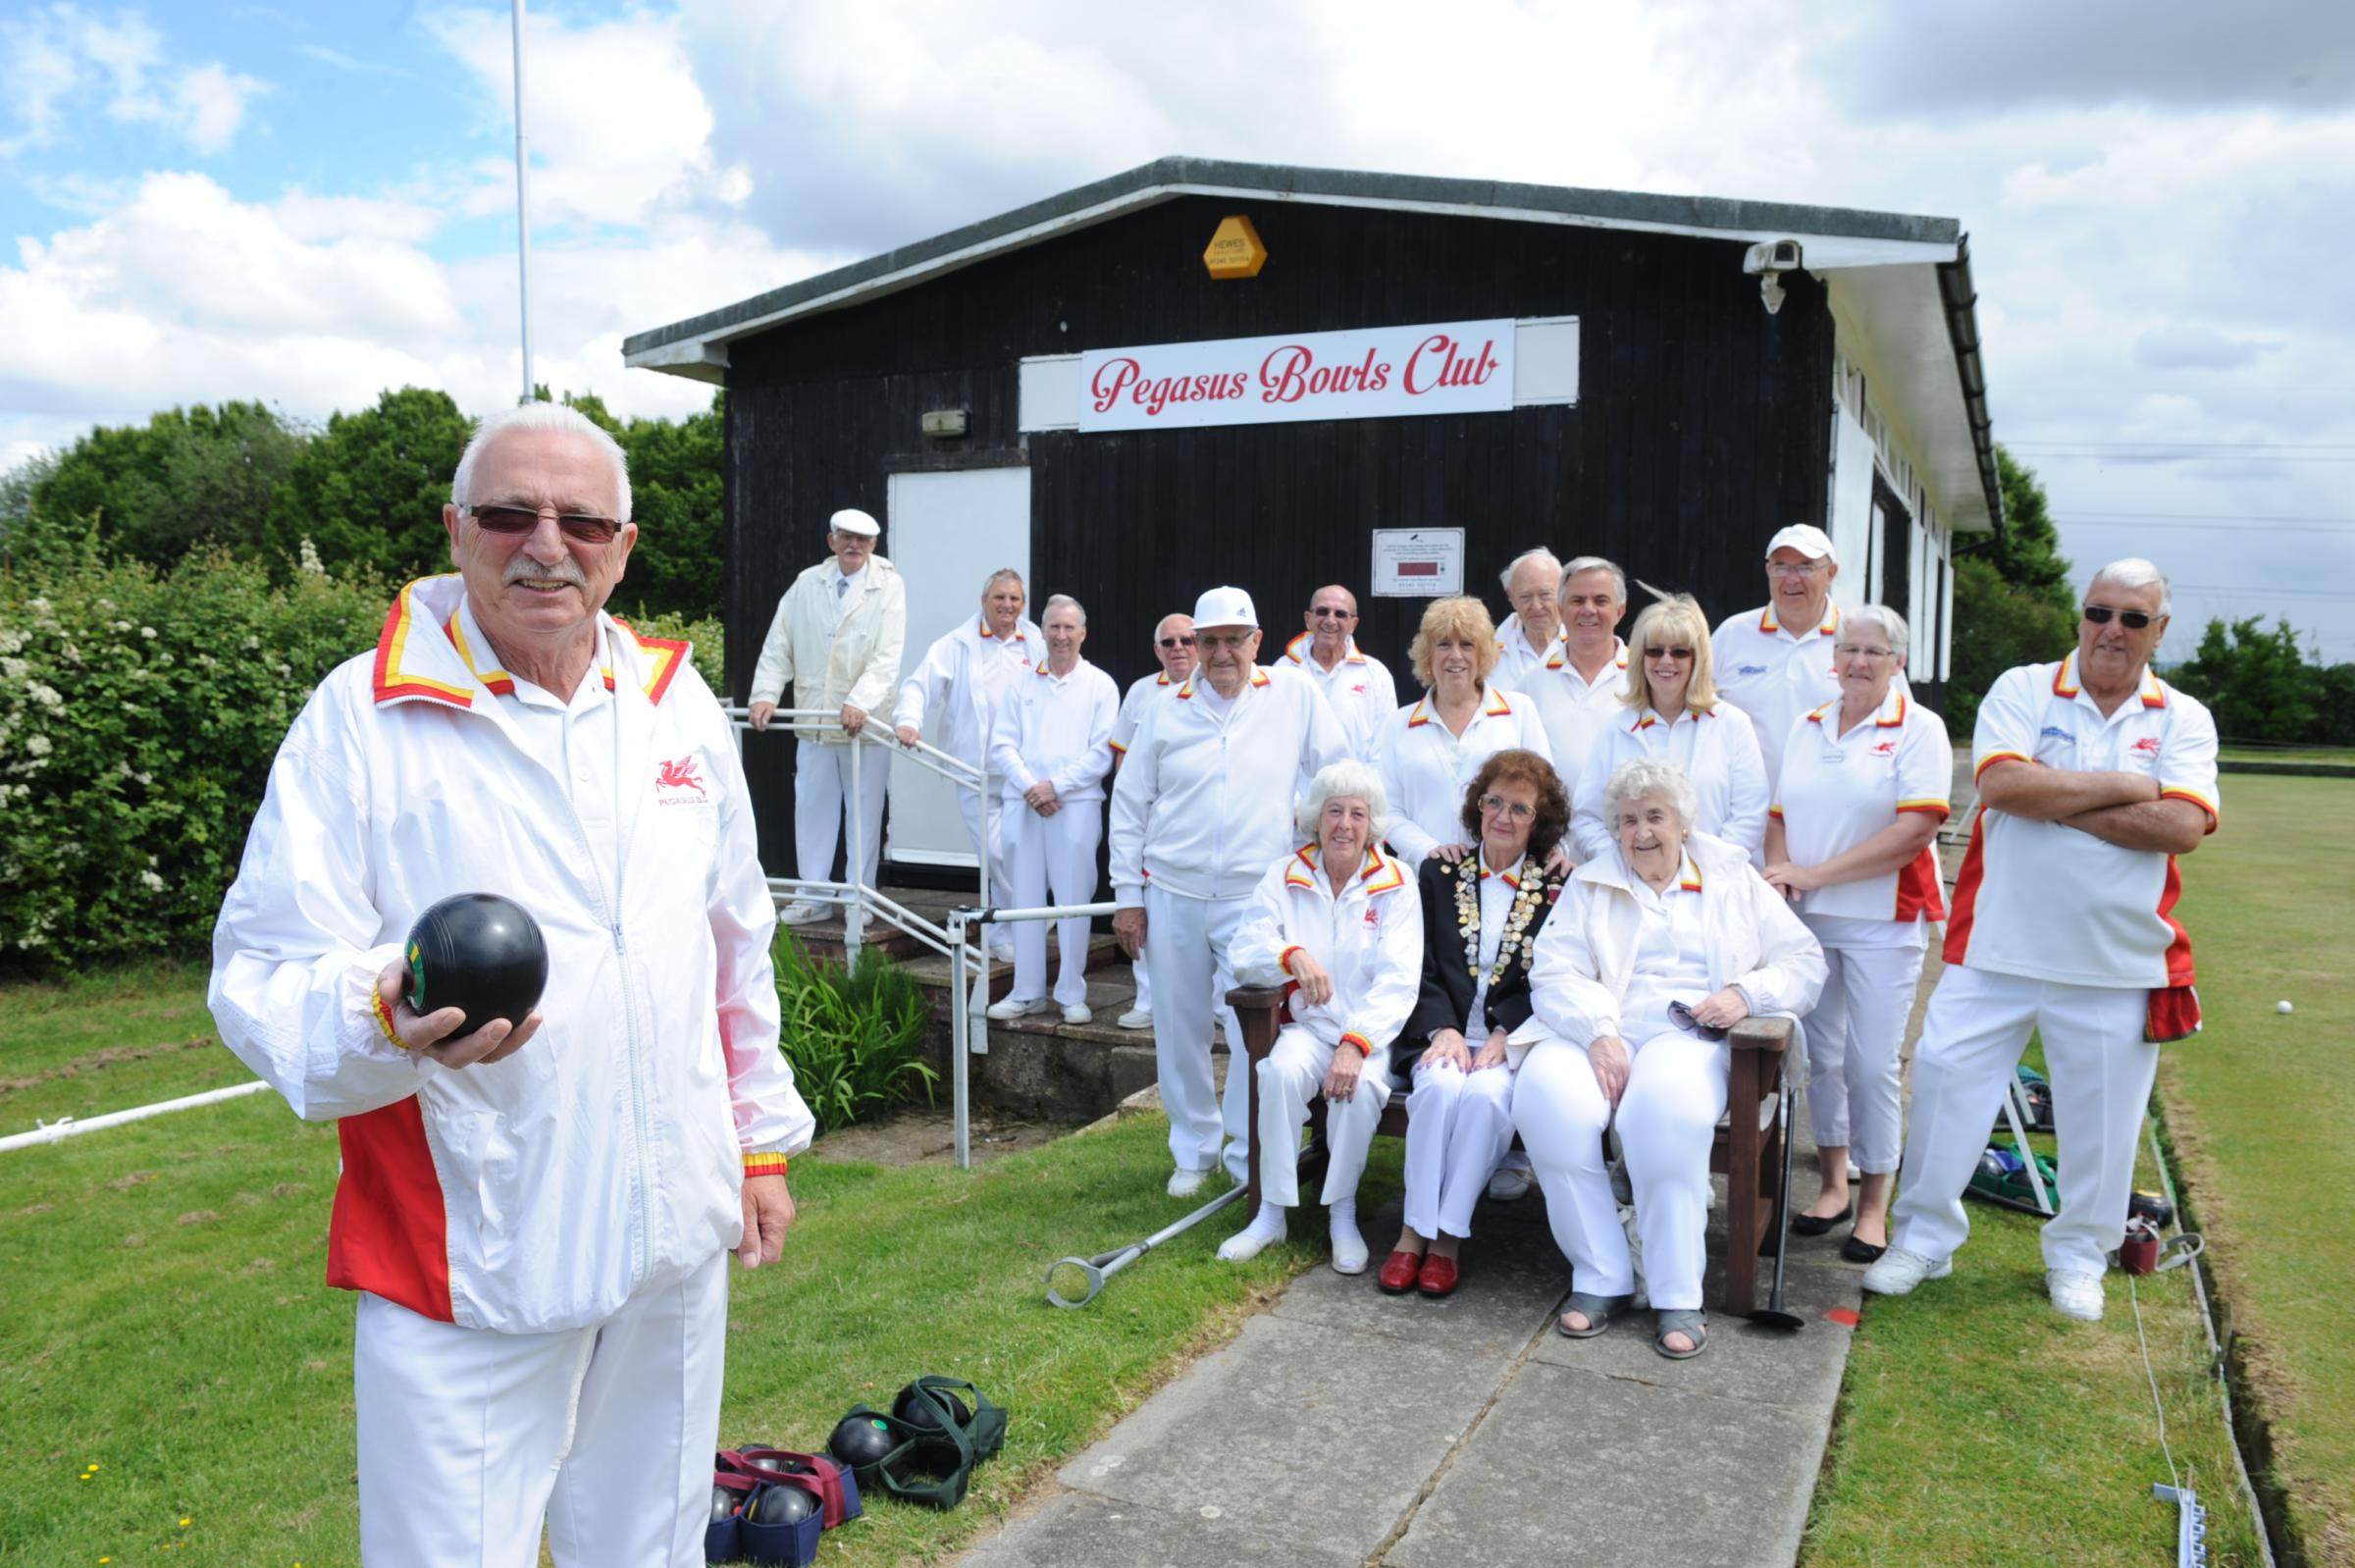 Bowled over – some of the members outside their new clubhouse